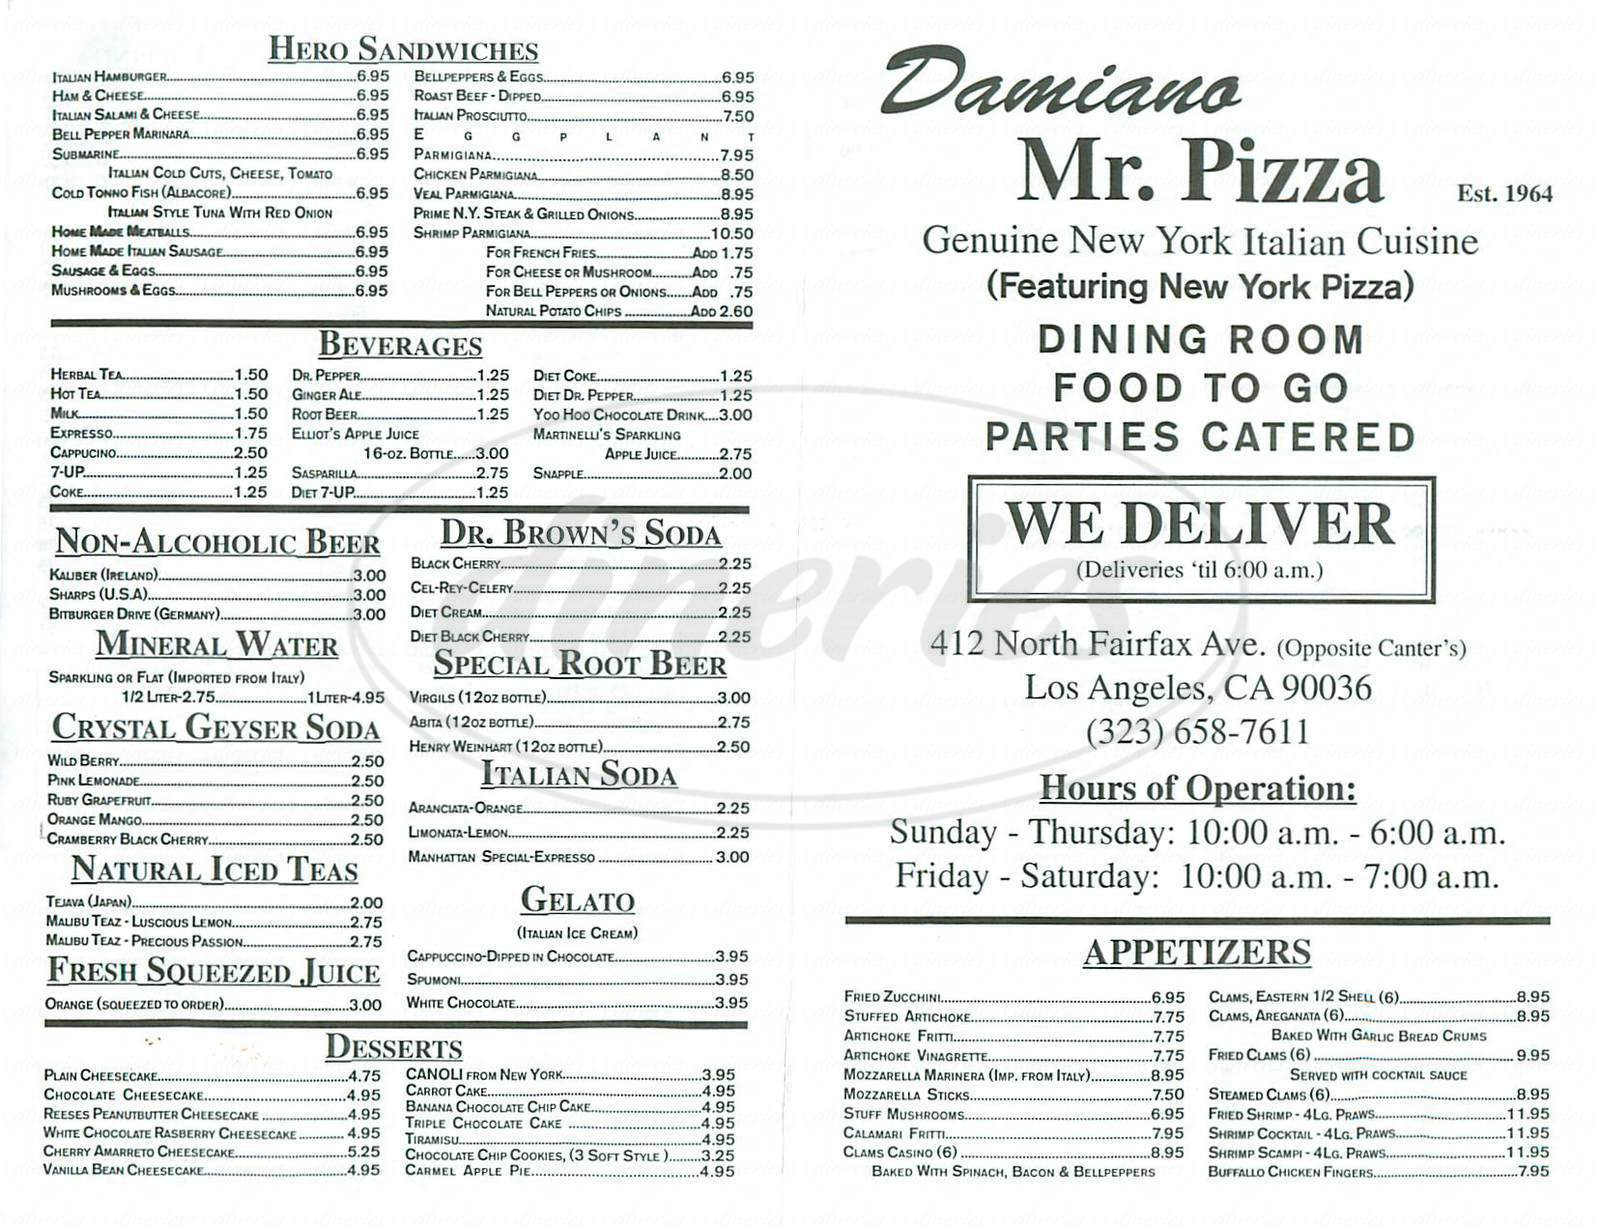 menu for Damiano Mr Pizza